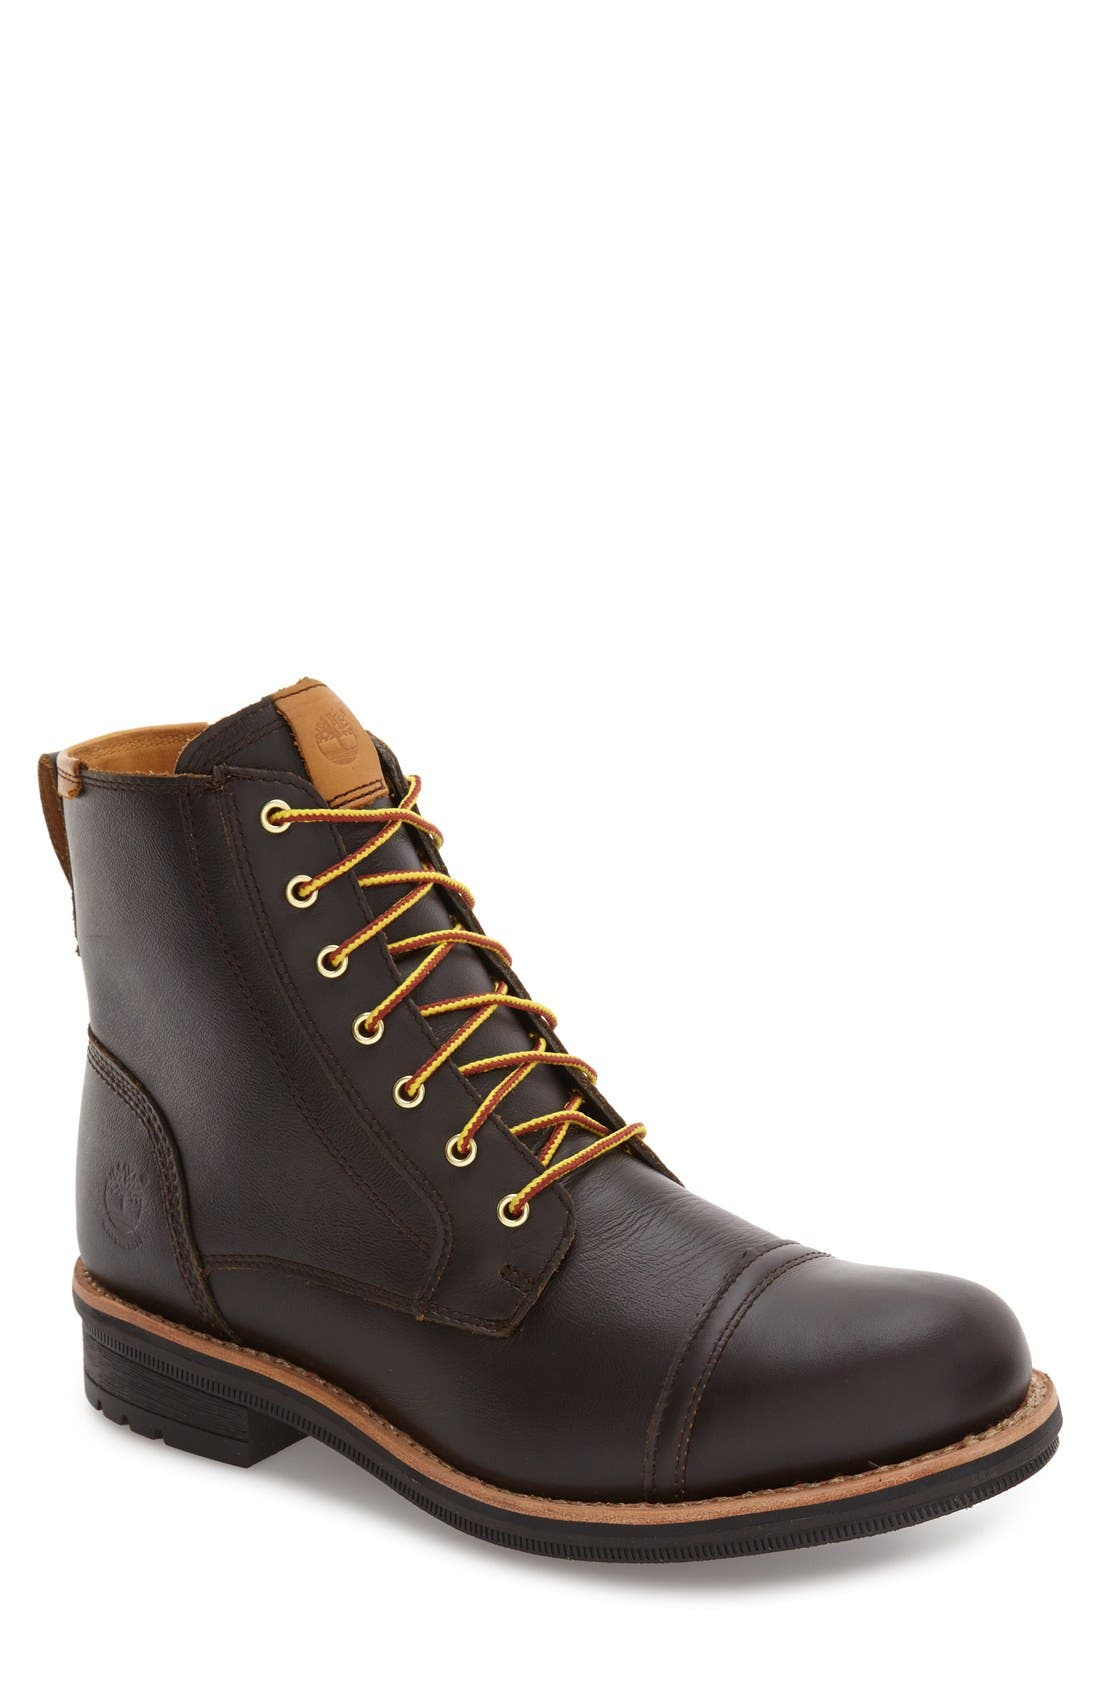 TIMBERLAND 'Willoughby' Cap Toe Boot, Main, color, 200